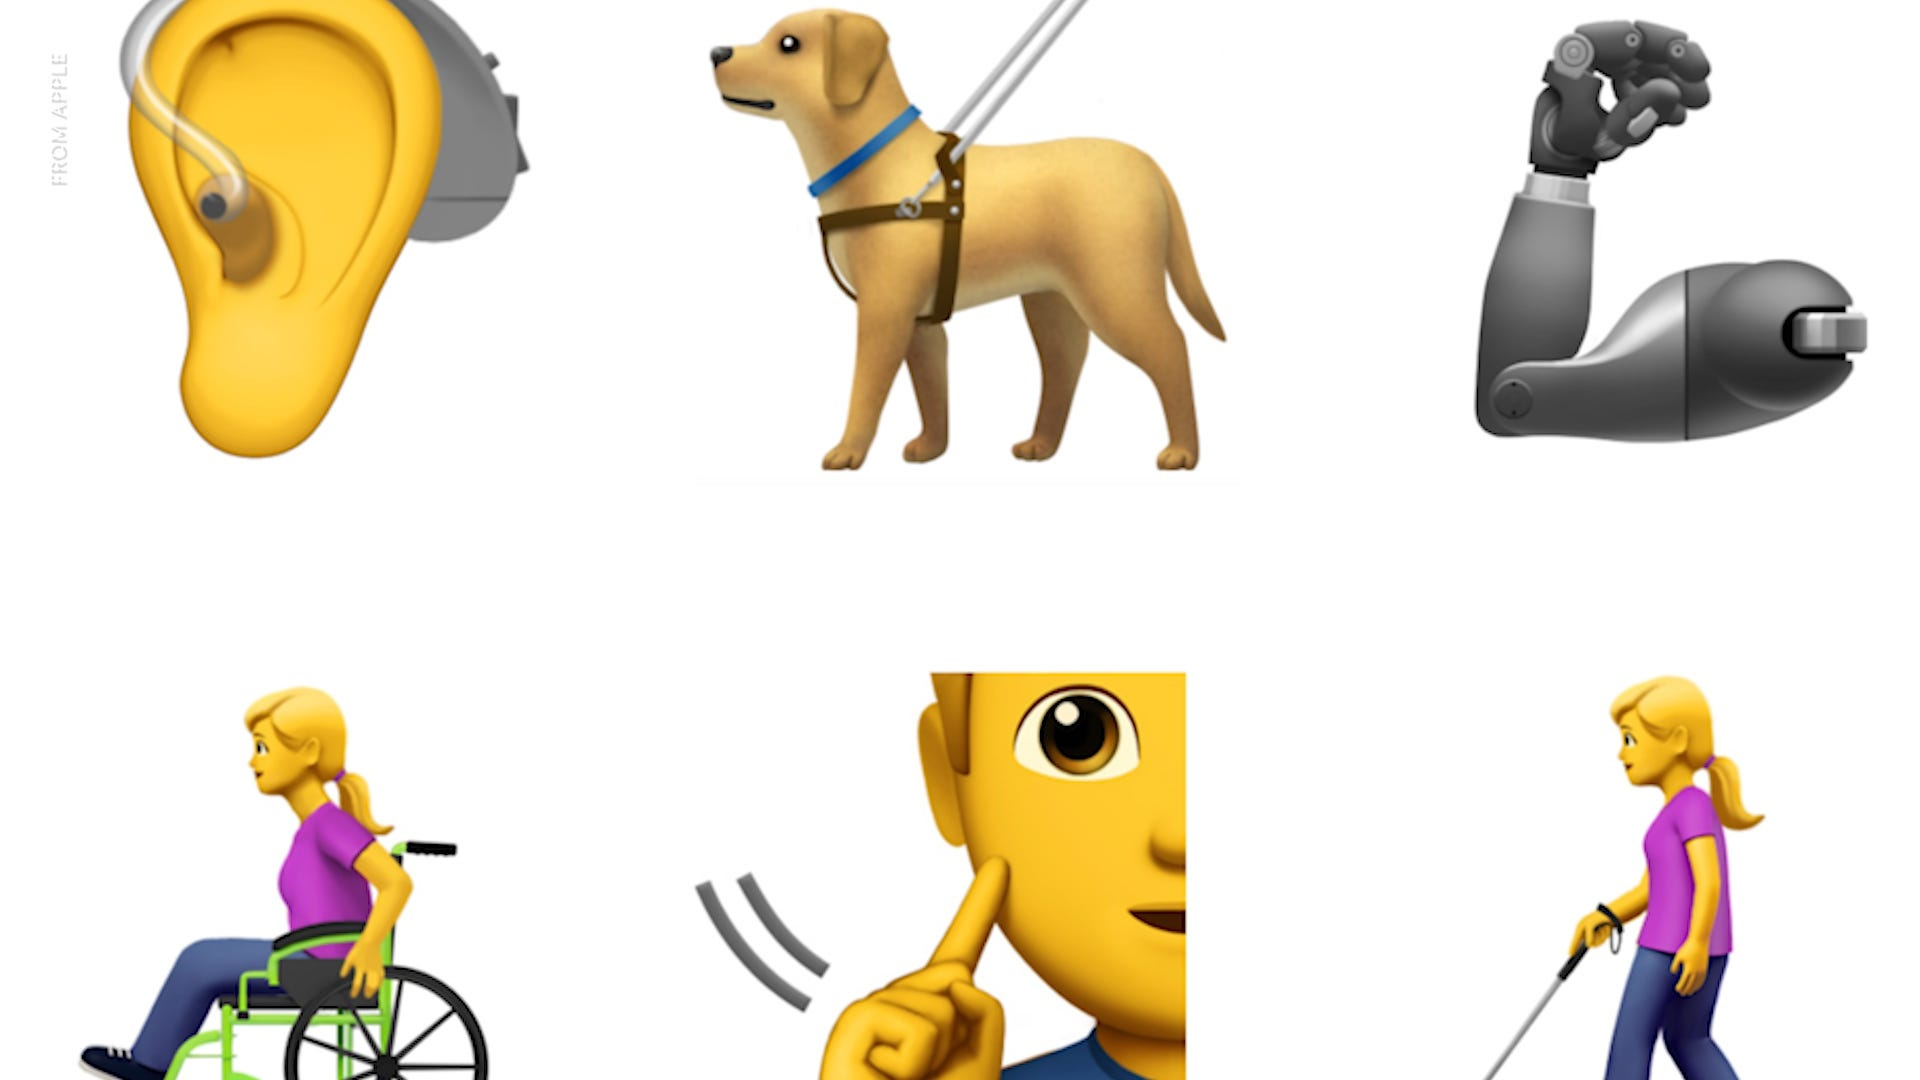 New emojis include hearing impaired, service dogs